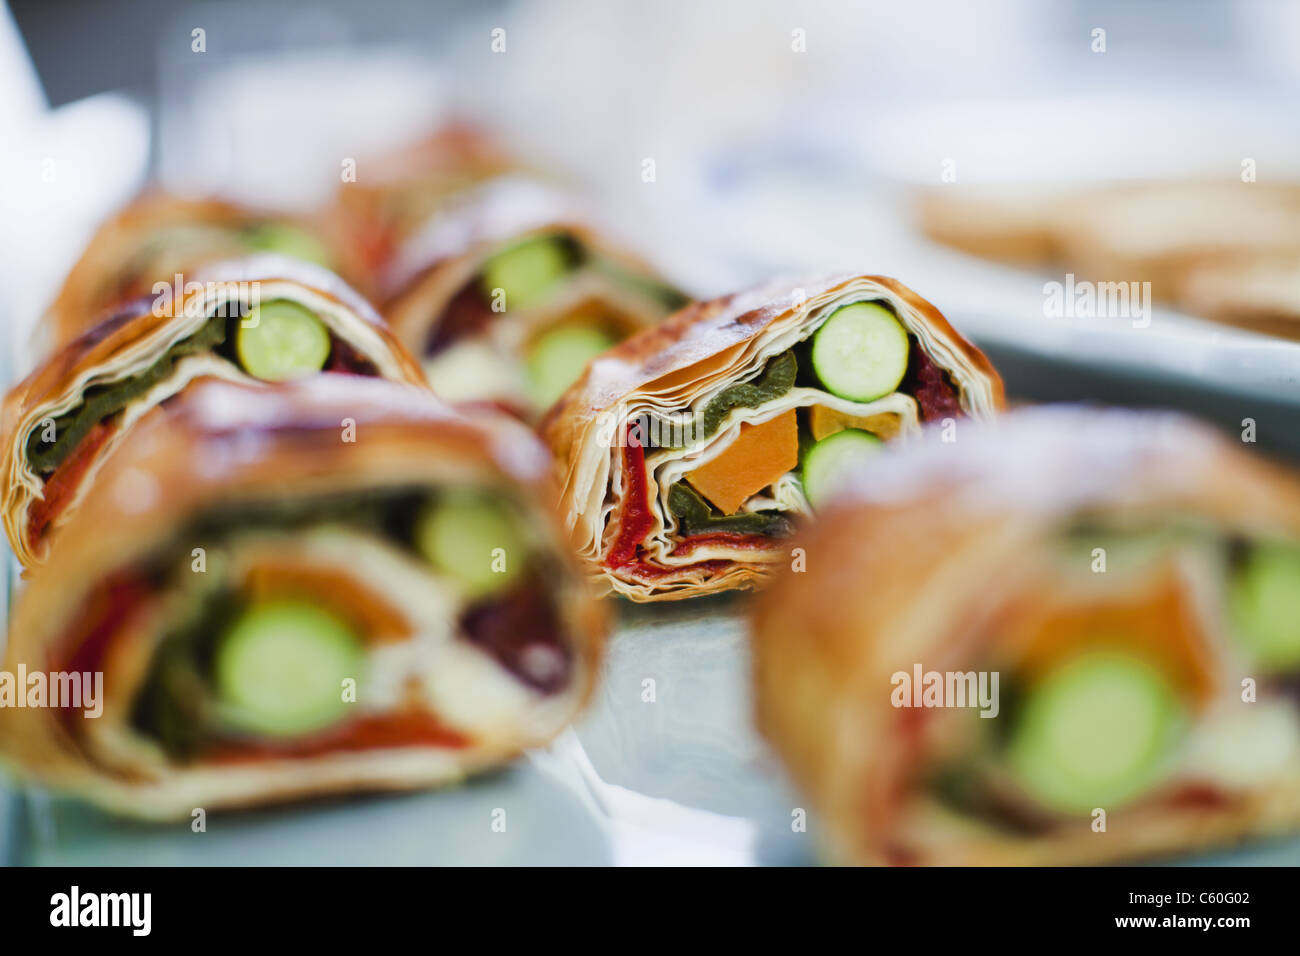 Close up of sandwich rolls for sale - Stock Image